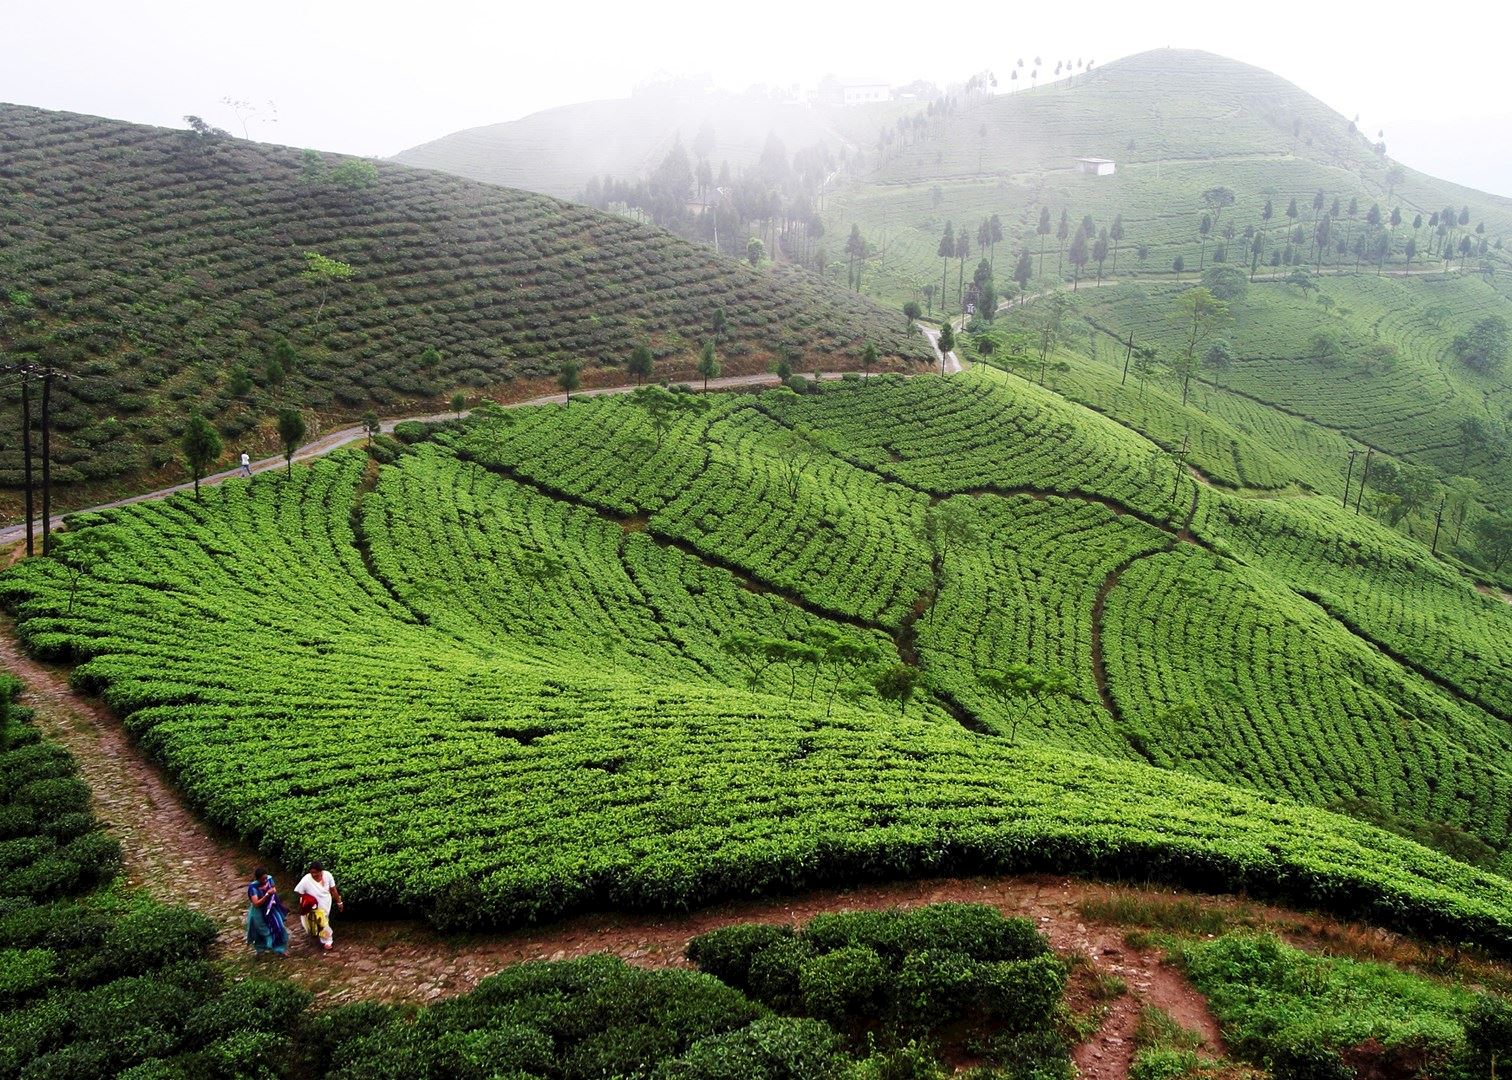 Visit Darjeeling on a trip to India | Audley Travel